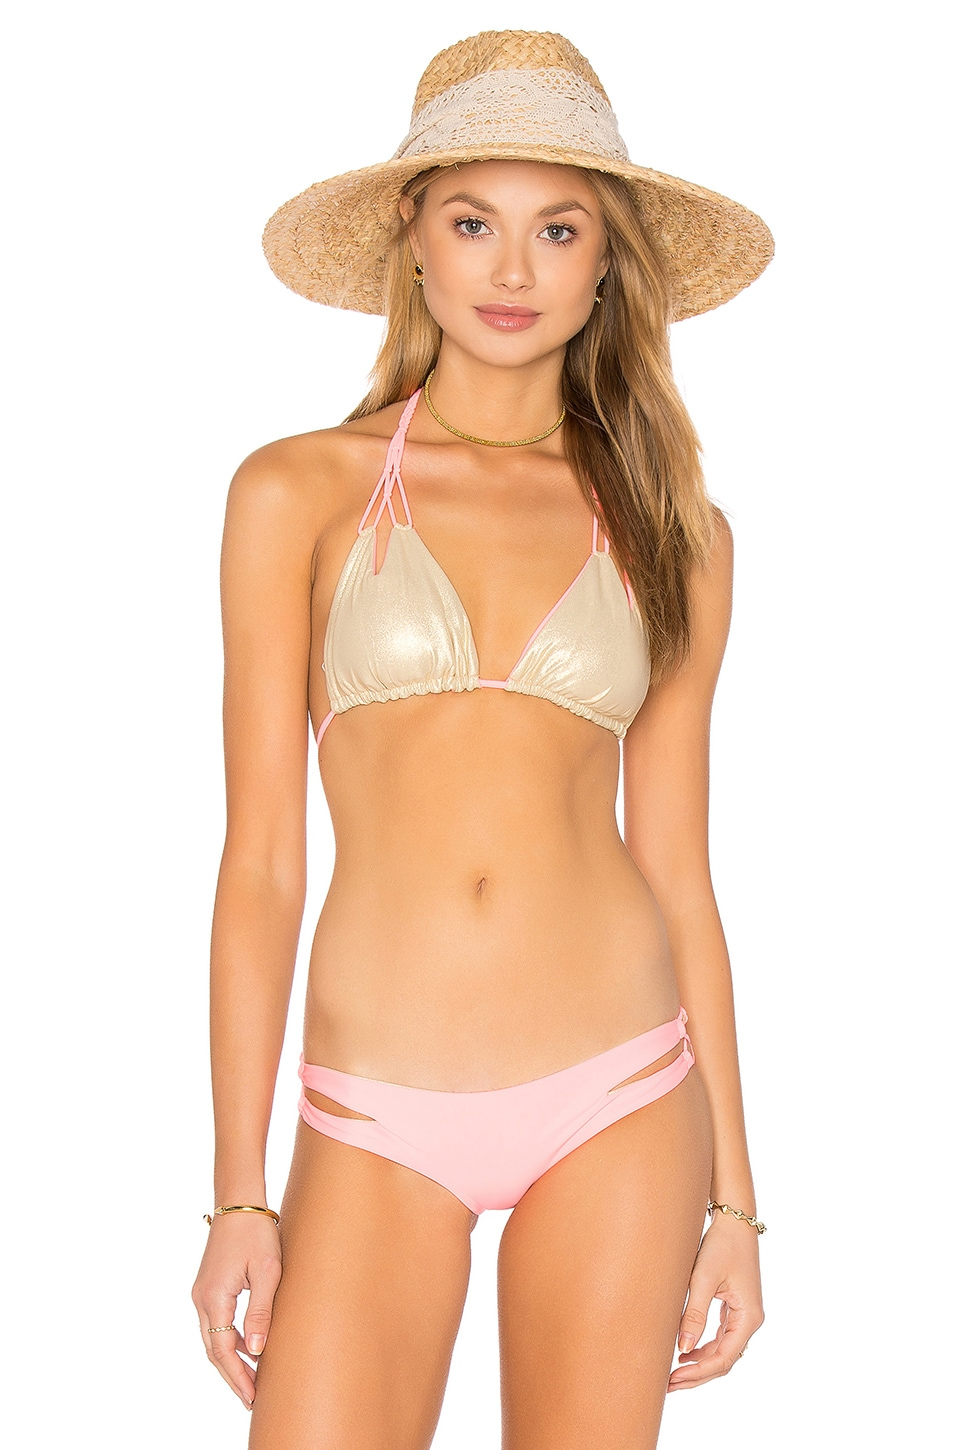 Cosita Buena Reversible Zig Zag Knotted Cut Out Triangle Top